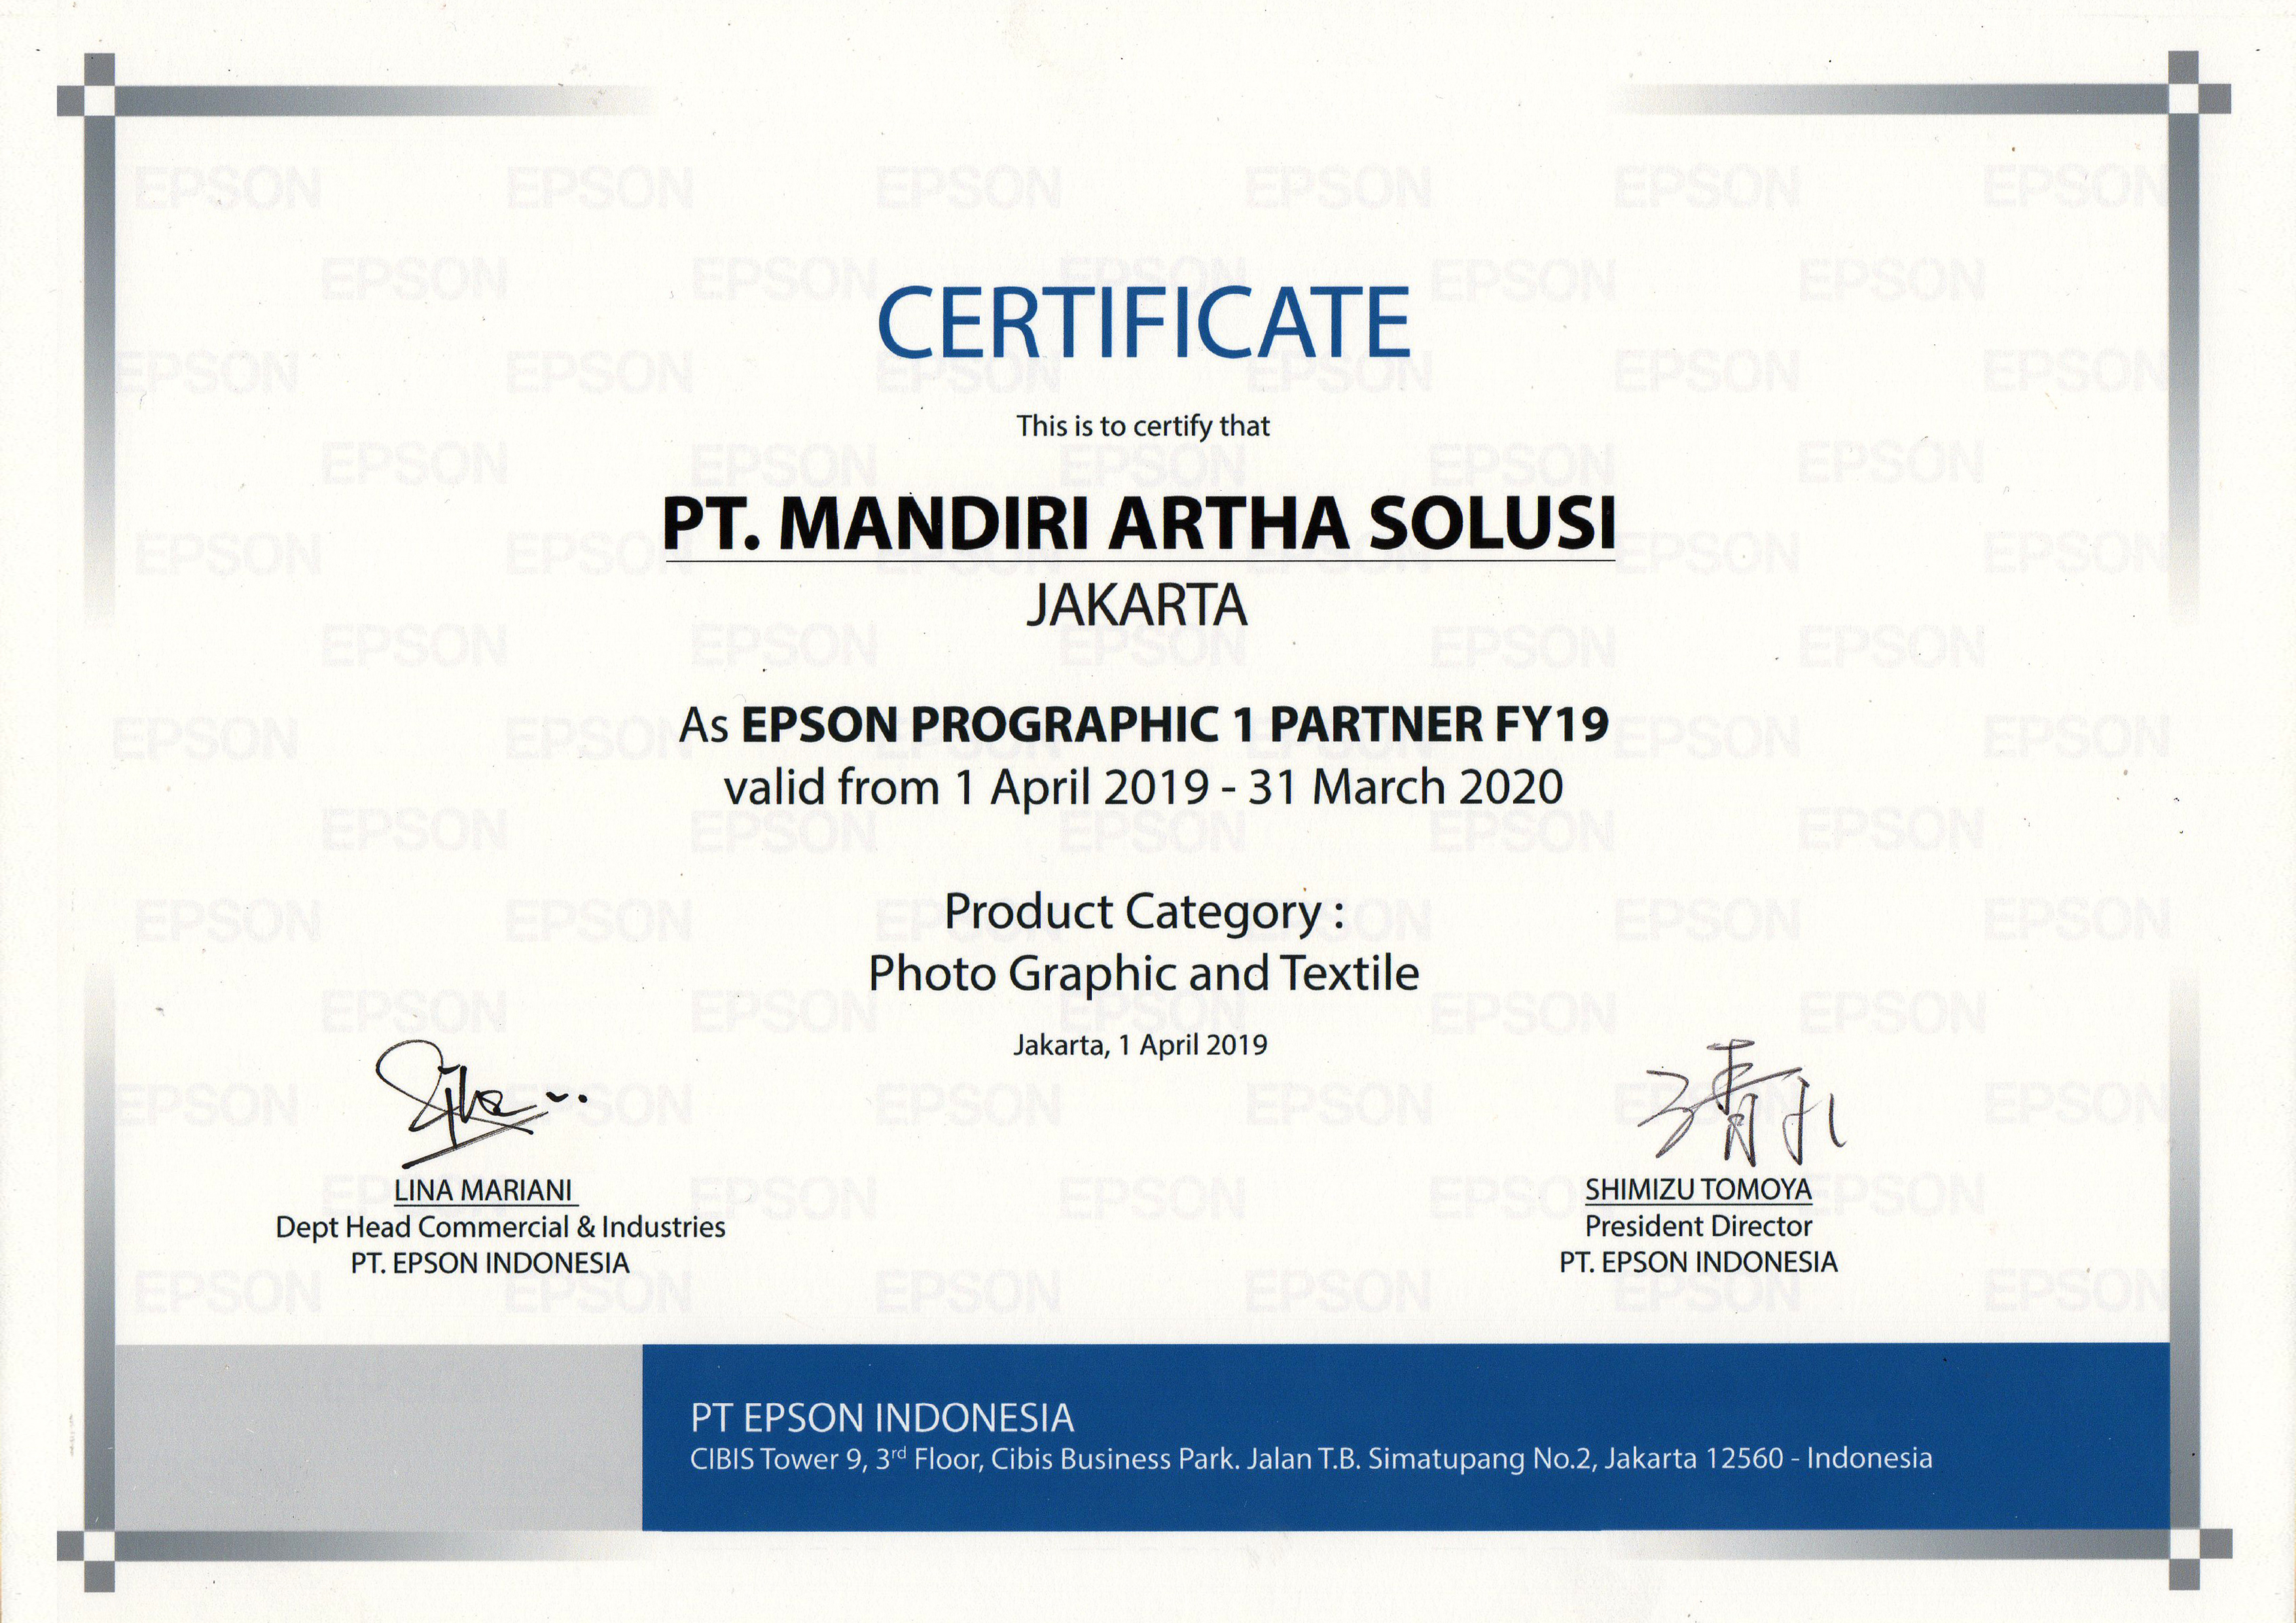 Certificate As EPSON PROGRAPHIC 1 PARTNER FY19